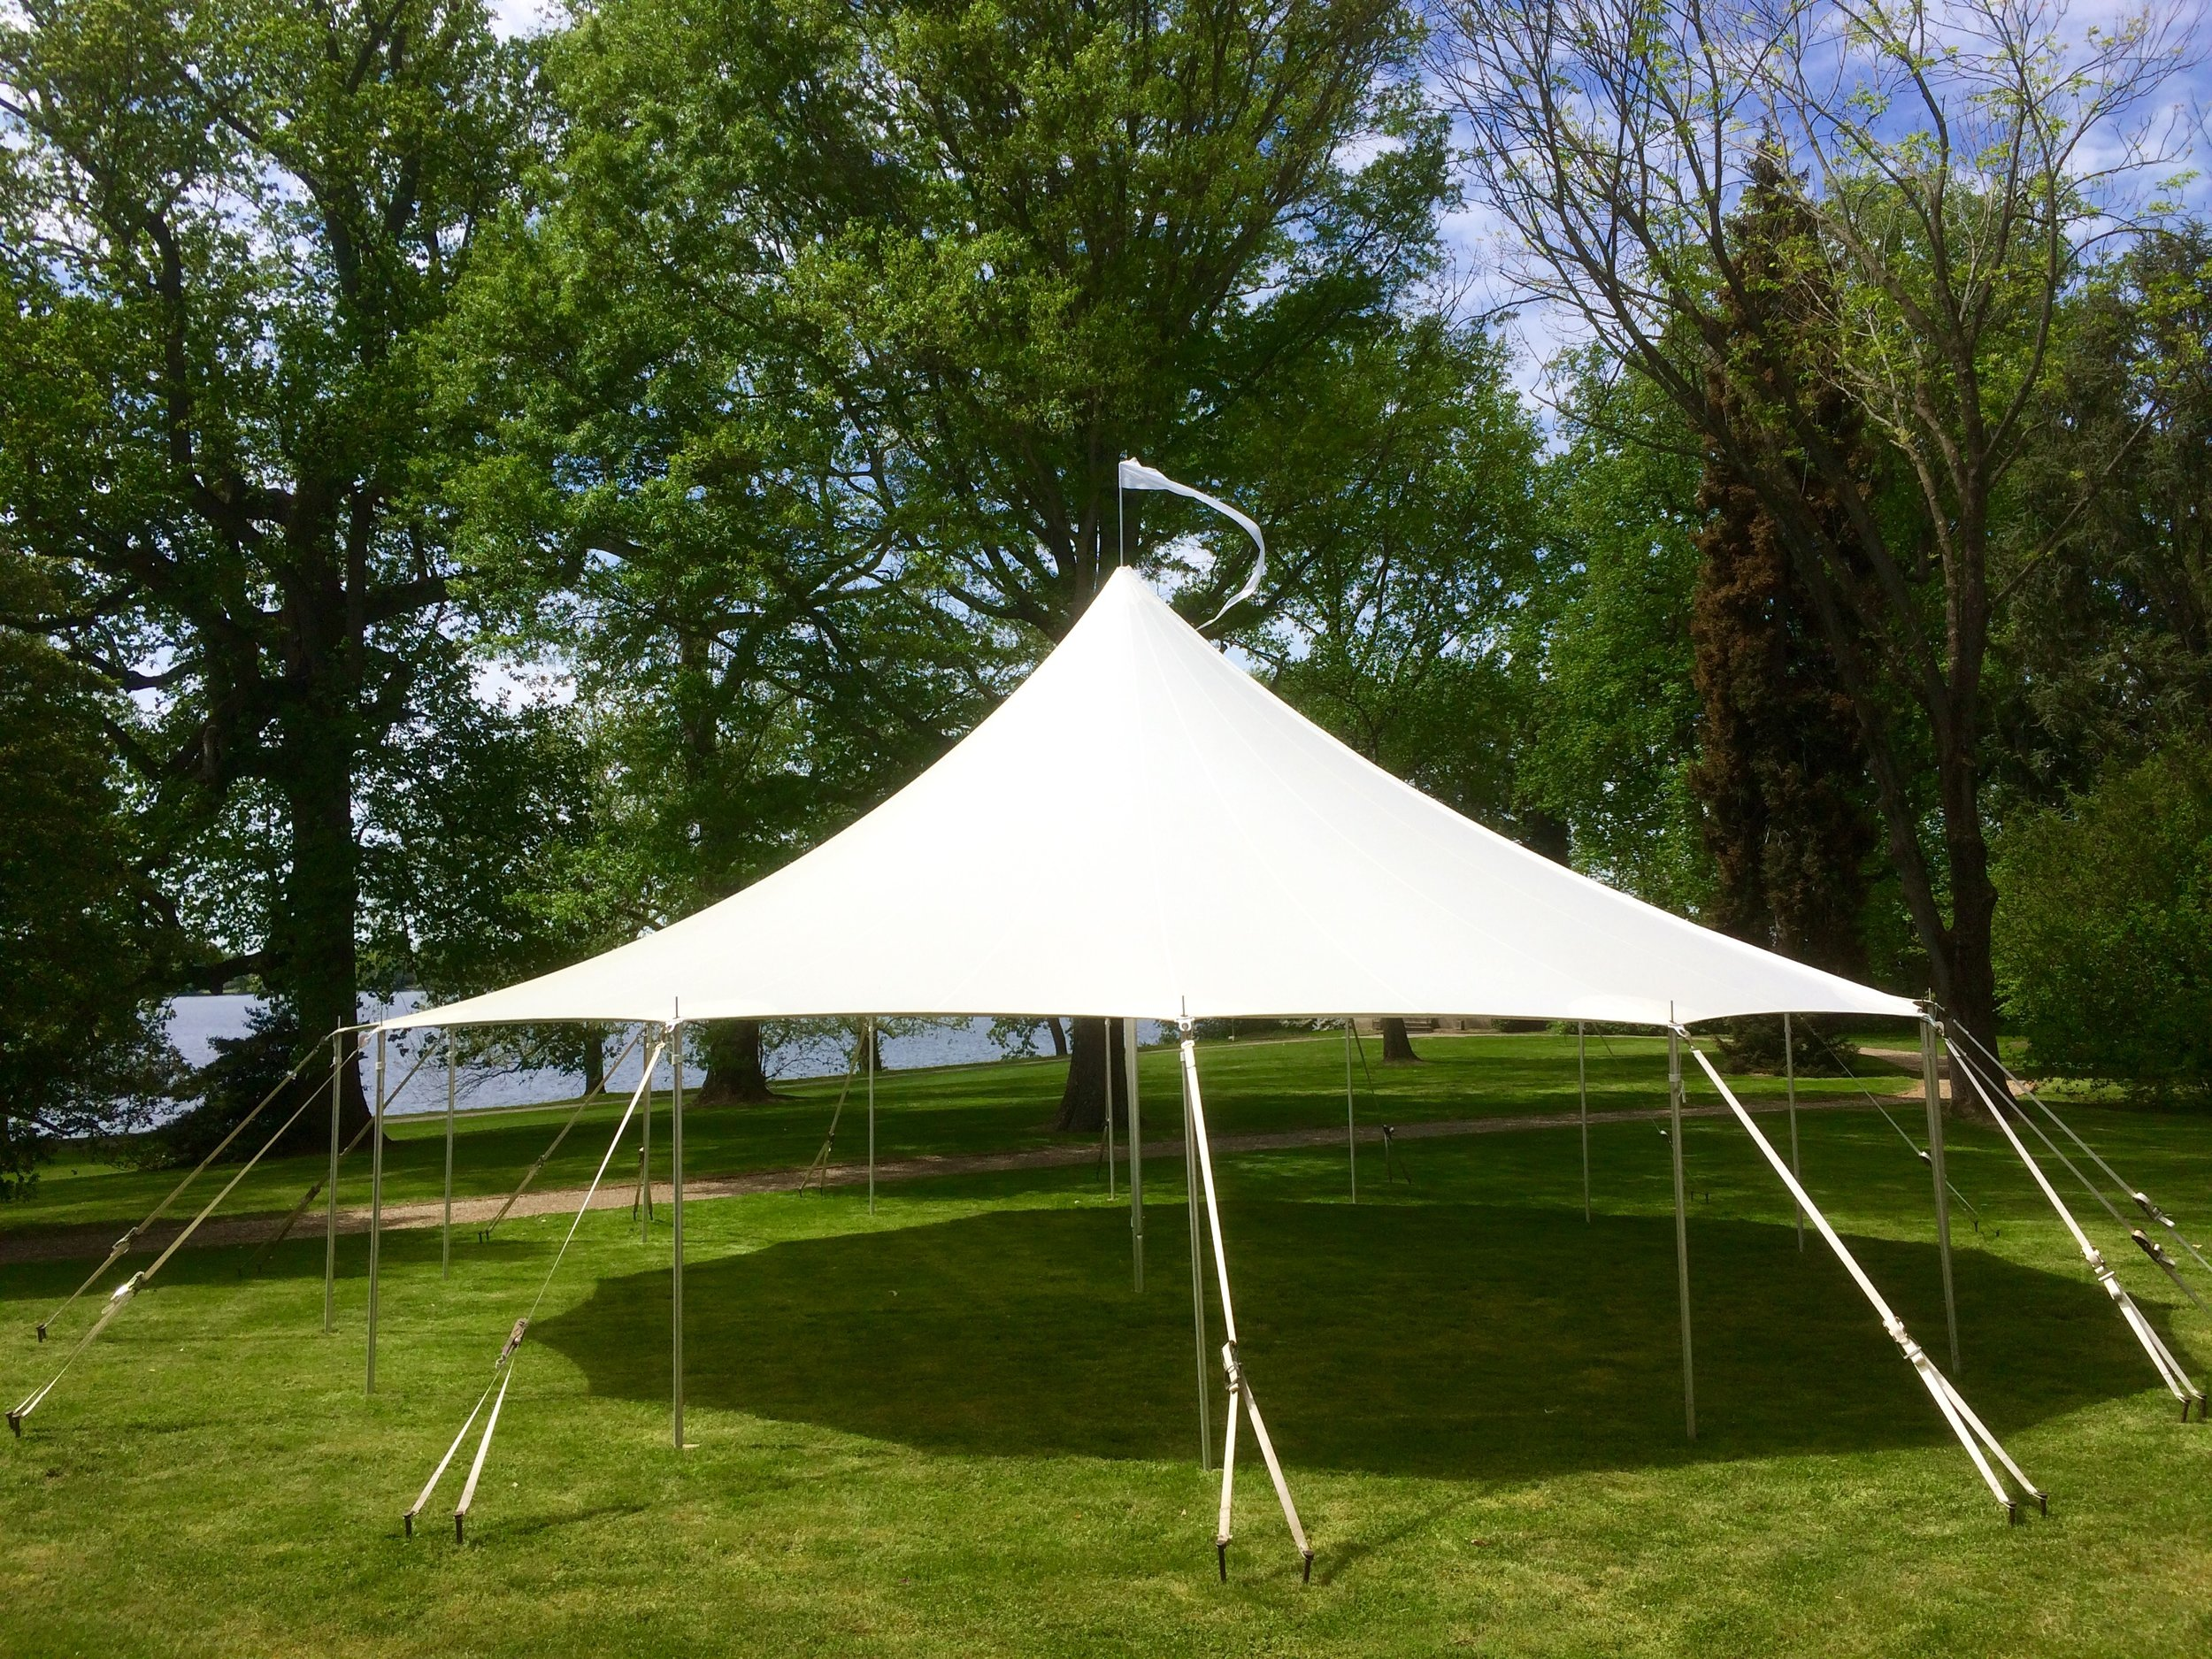 Beautiful Sailcloth tent for rent in Hazleton, PA